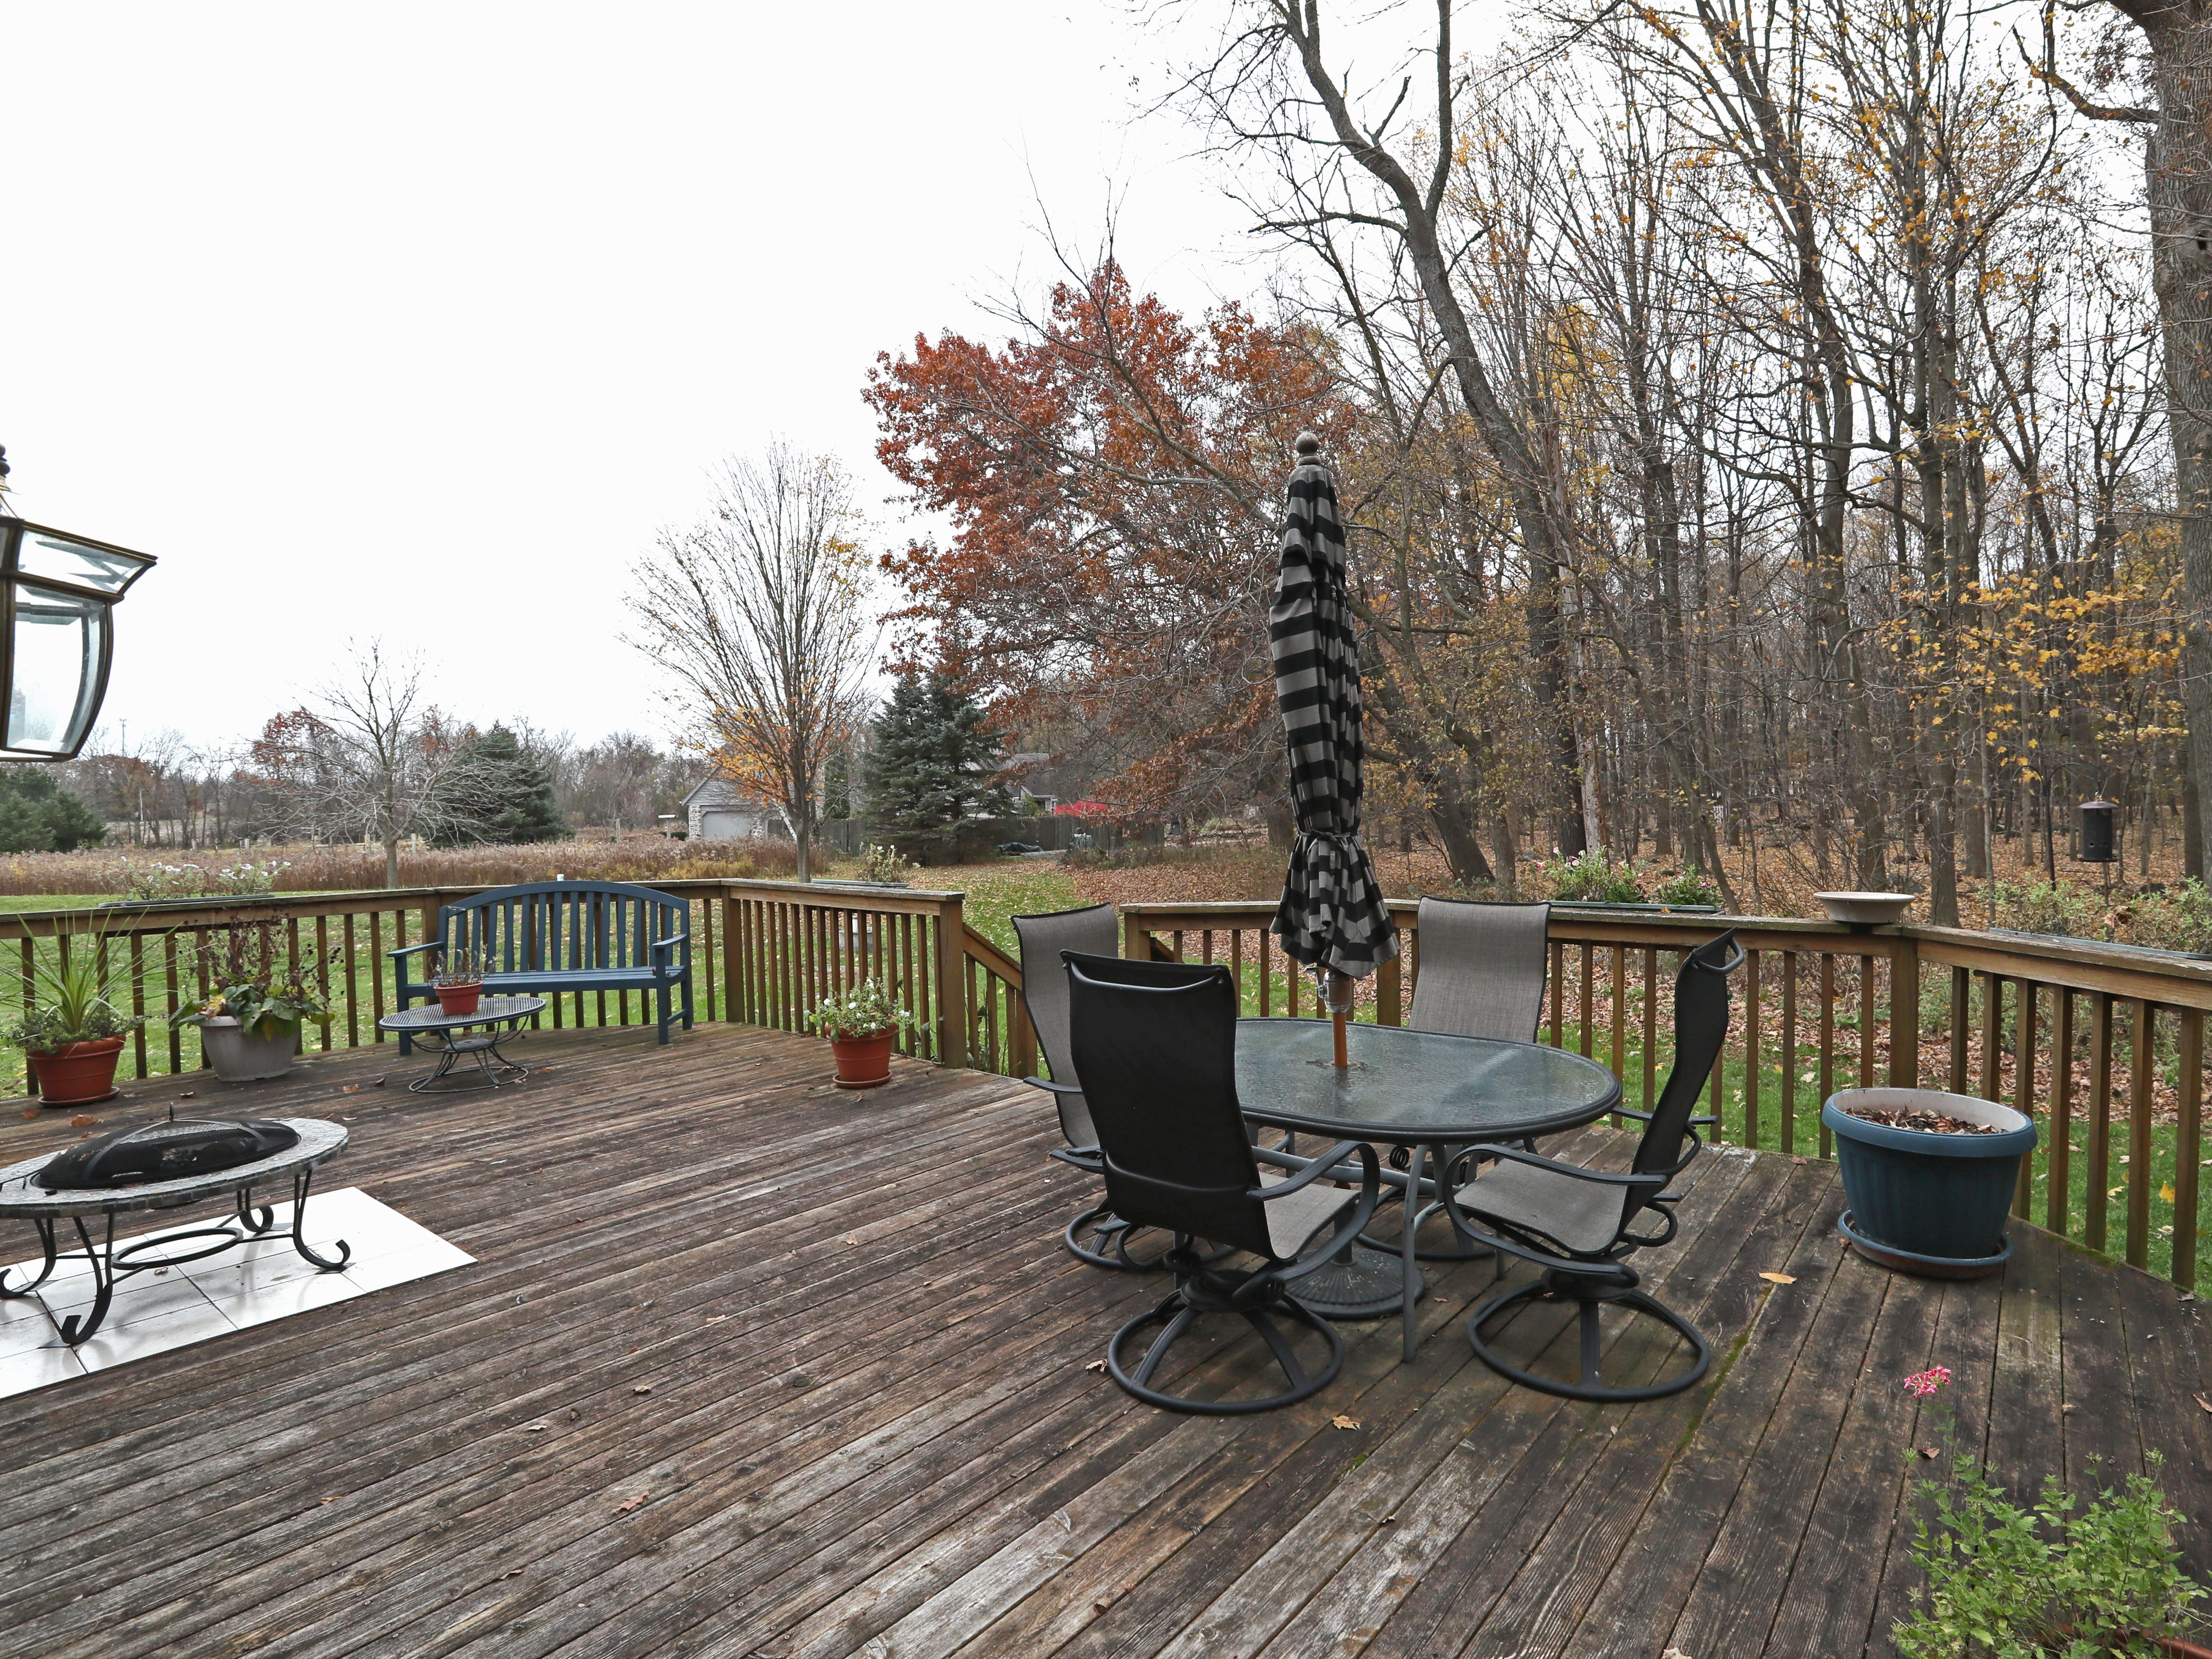 In summer the couple spends a lot of time on their deck at the rear of the house.